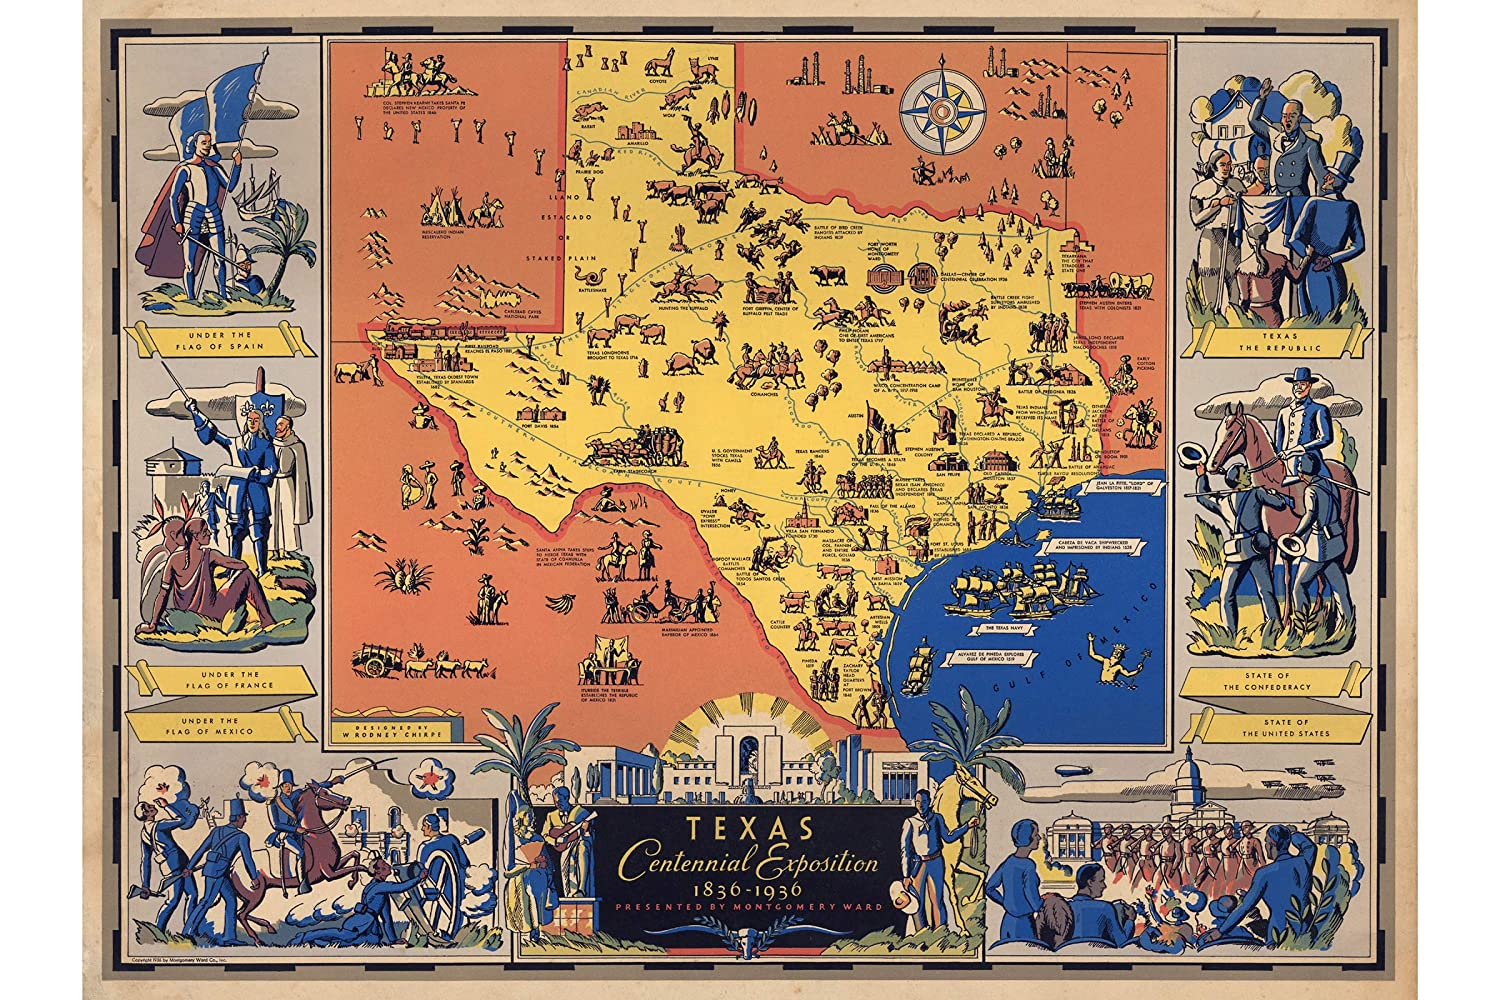 Map Of Texas 1836.Amazon Com Antique Map Of Texas Centennial Exposition 1830 1936 To